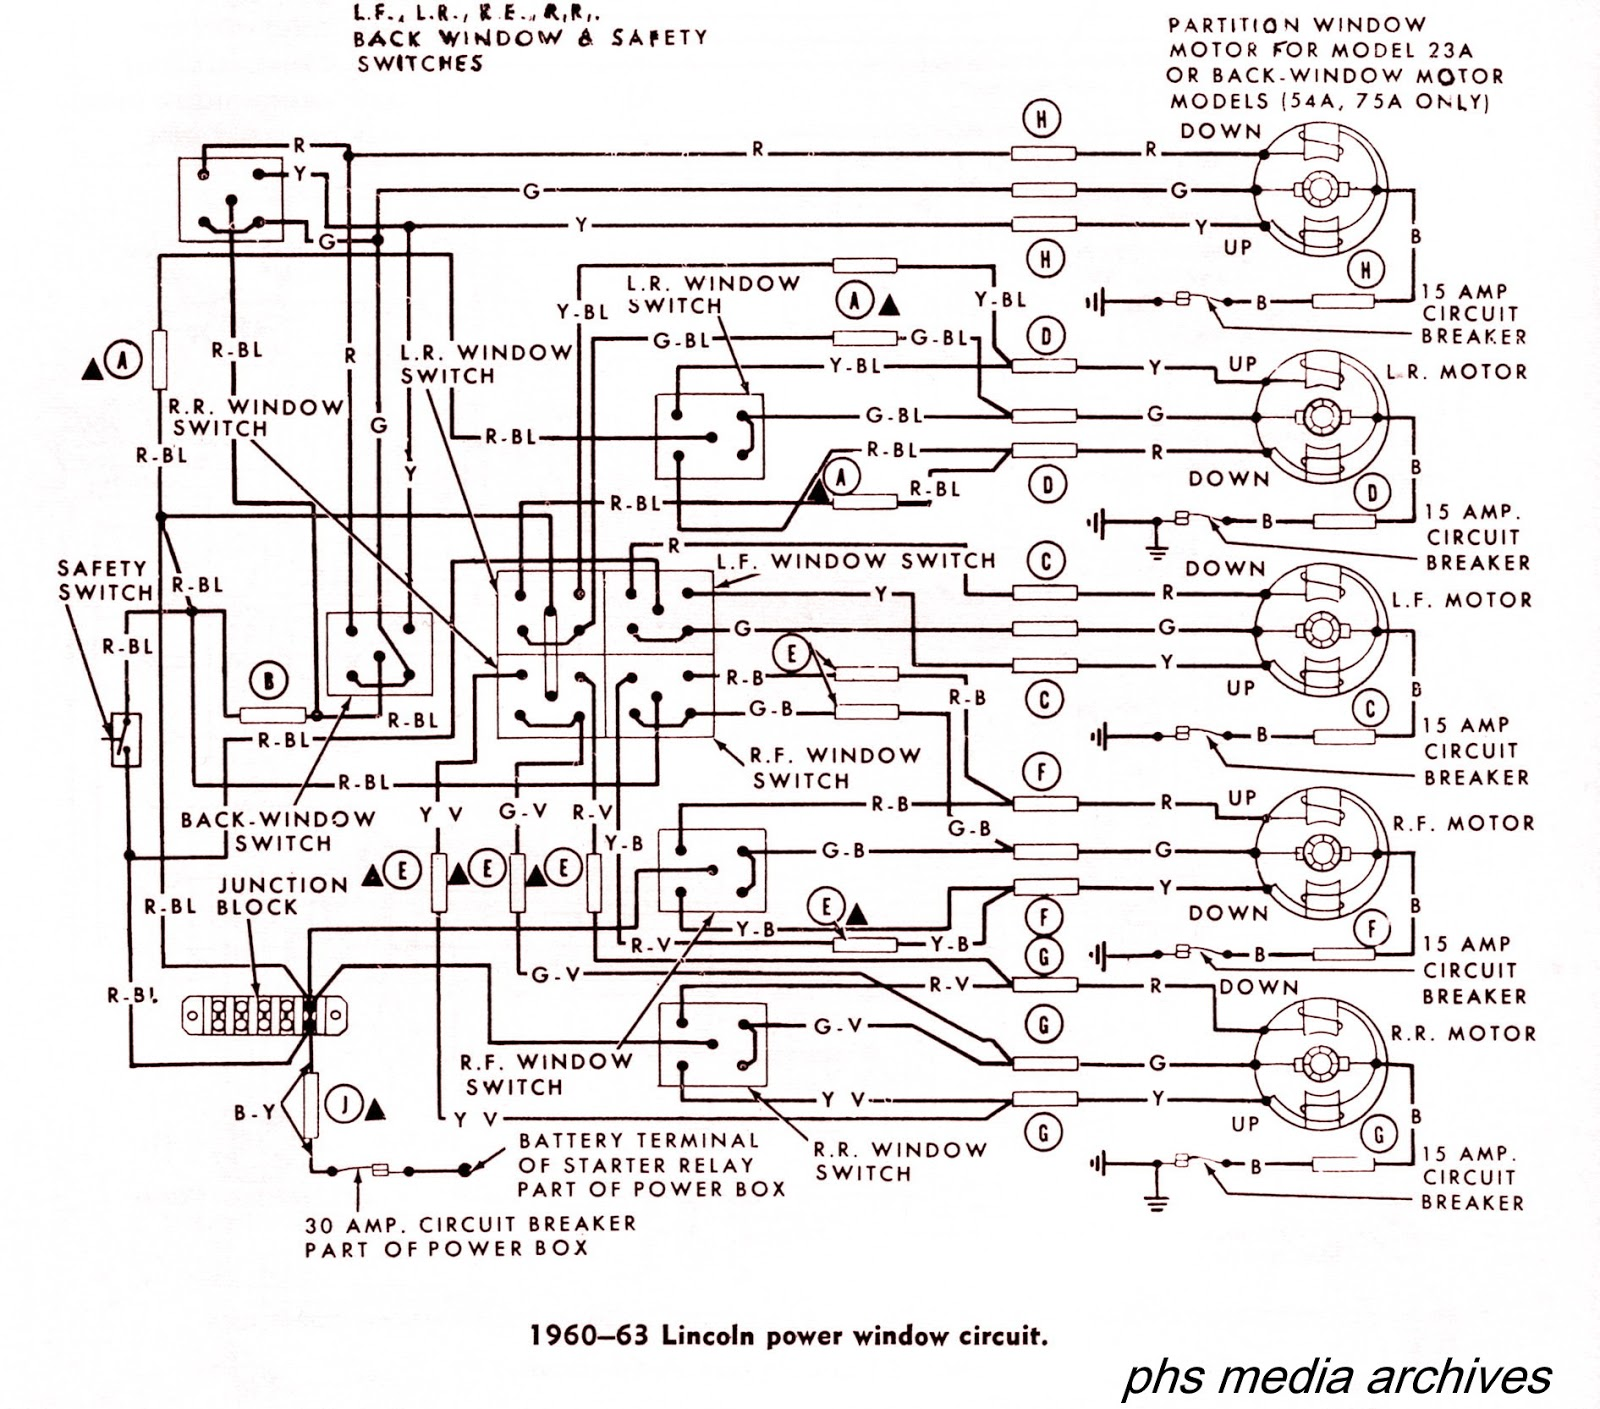 1960 Lincoln Wiring Diagram Ford Thunderbird Tech Series 1964 Diagrams Phscollectorcarworld Rh Blogspot Com Continental